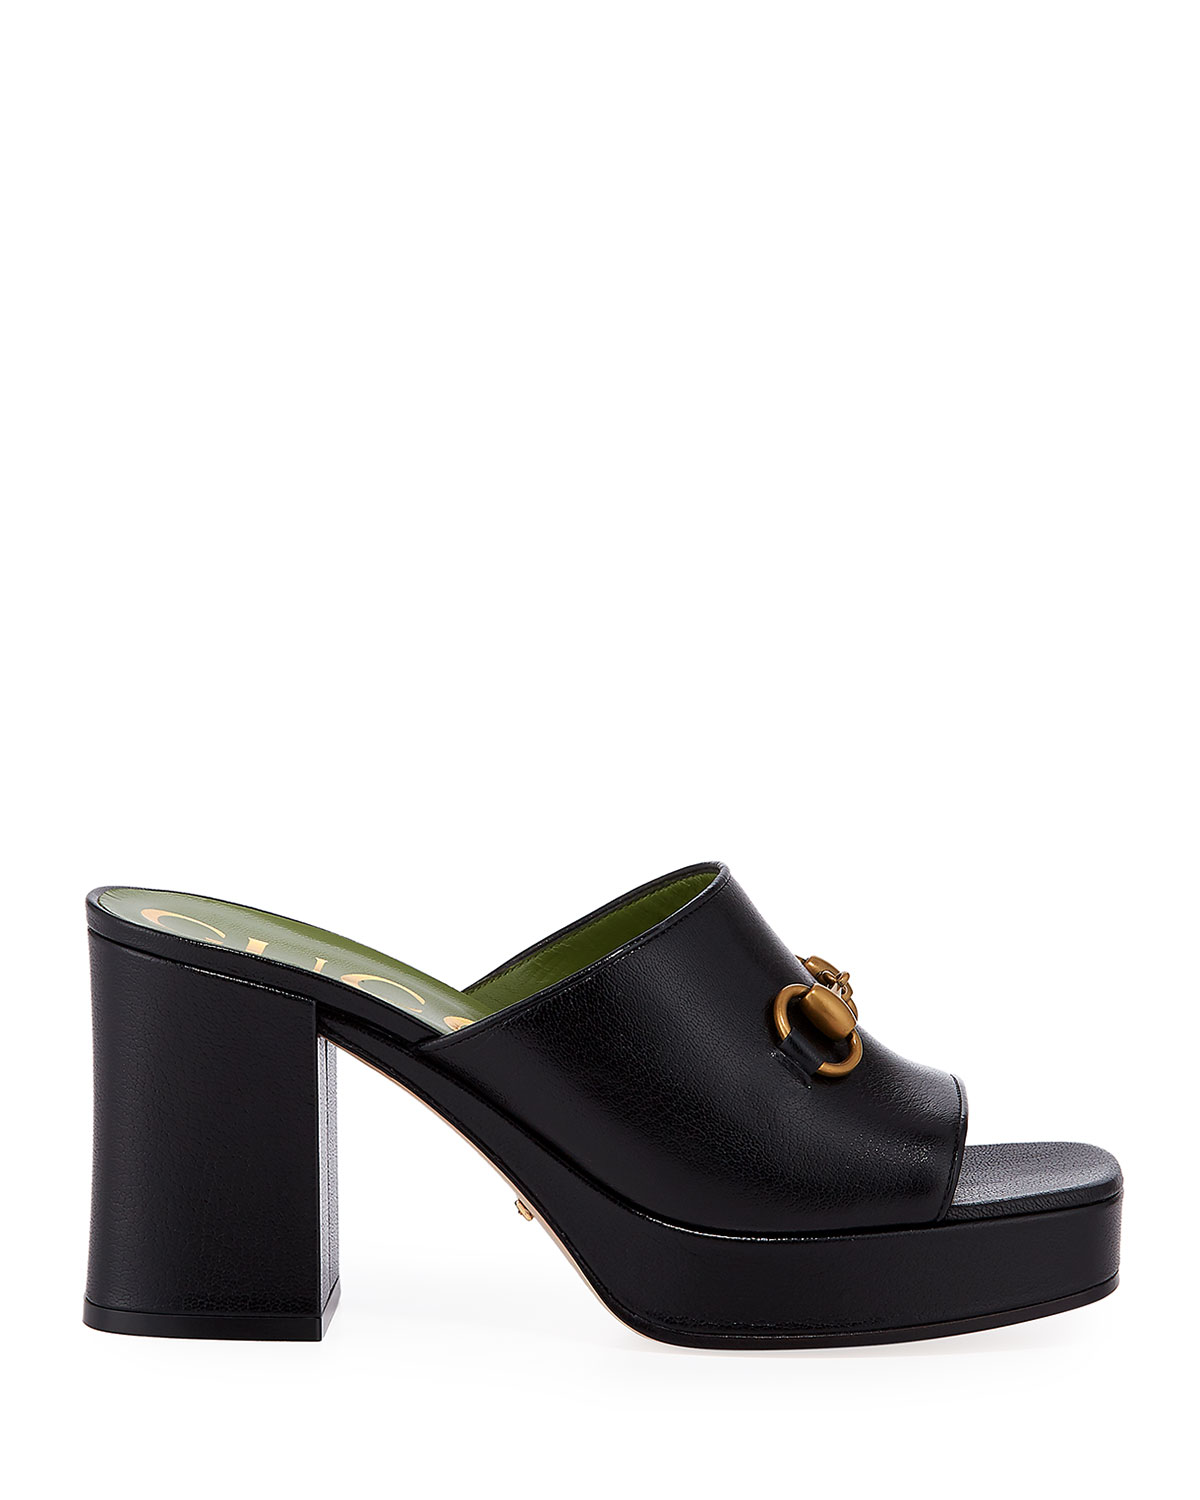 Houdan 85mm Leather Slide Sandals by Gucci